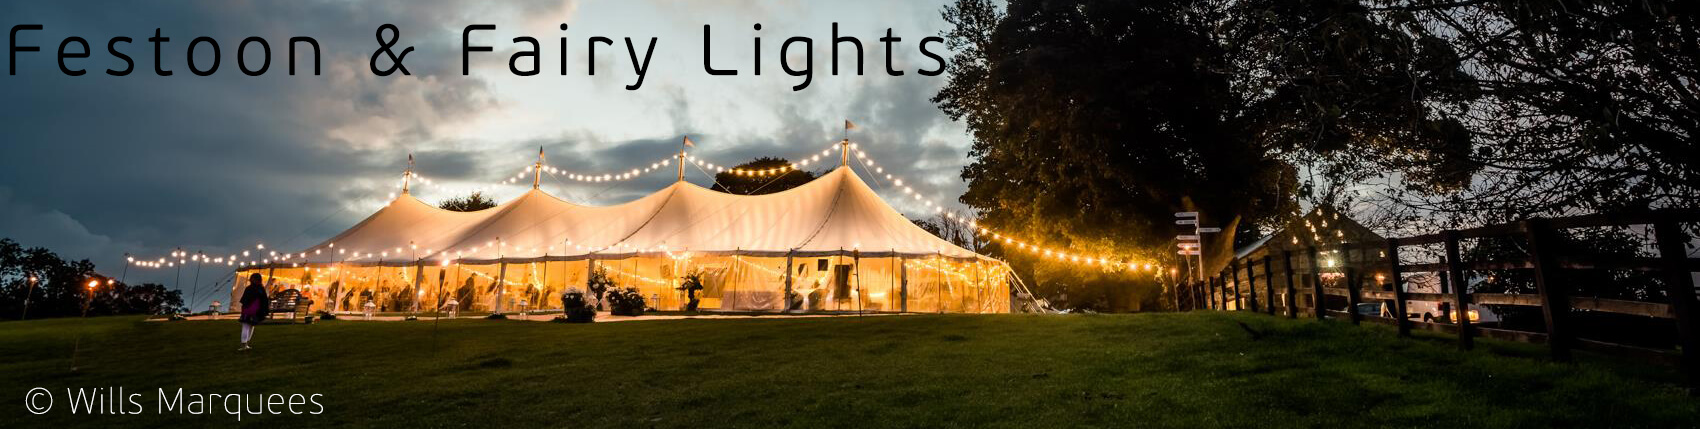 Festoon & Fairy Lights